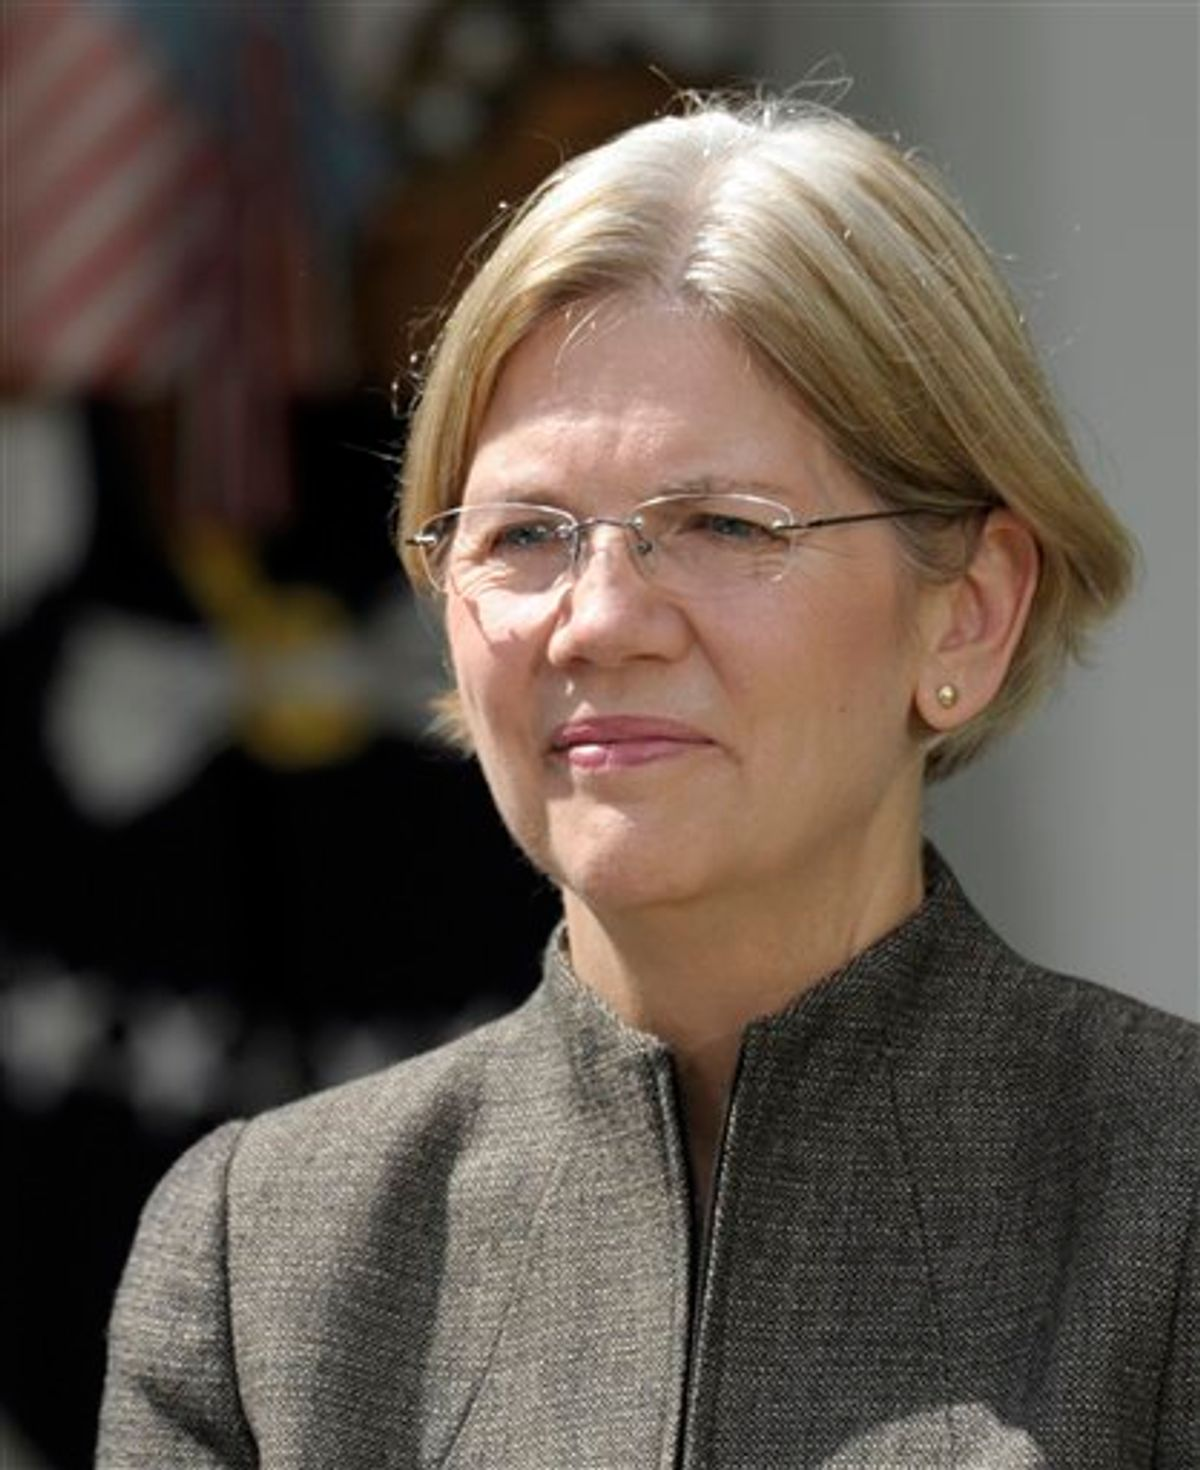 Elizabeth Warren is seen in the Rose Garden of the White House in Washington, Friday, Sept. 17, 2010, where President Barack Obama announces that she will head the Consumer Financial Protection Bureau. (AP Photo/Susan Walsh) (AP)